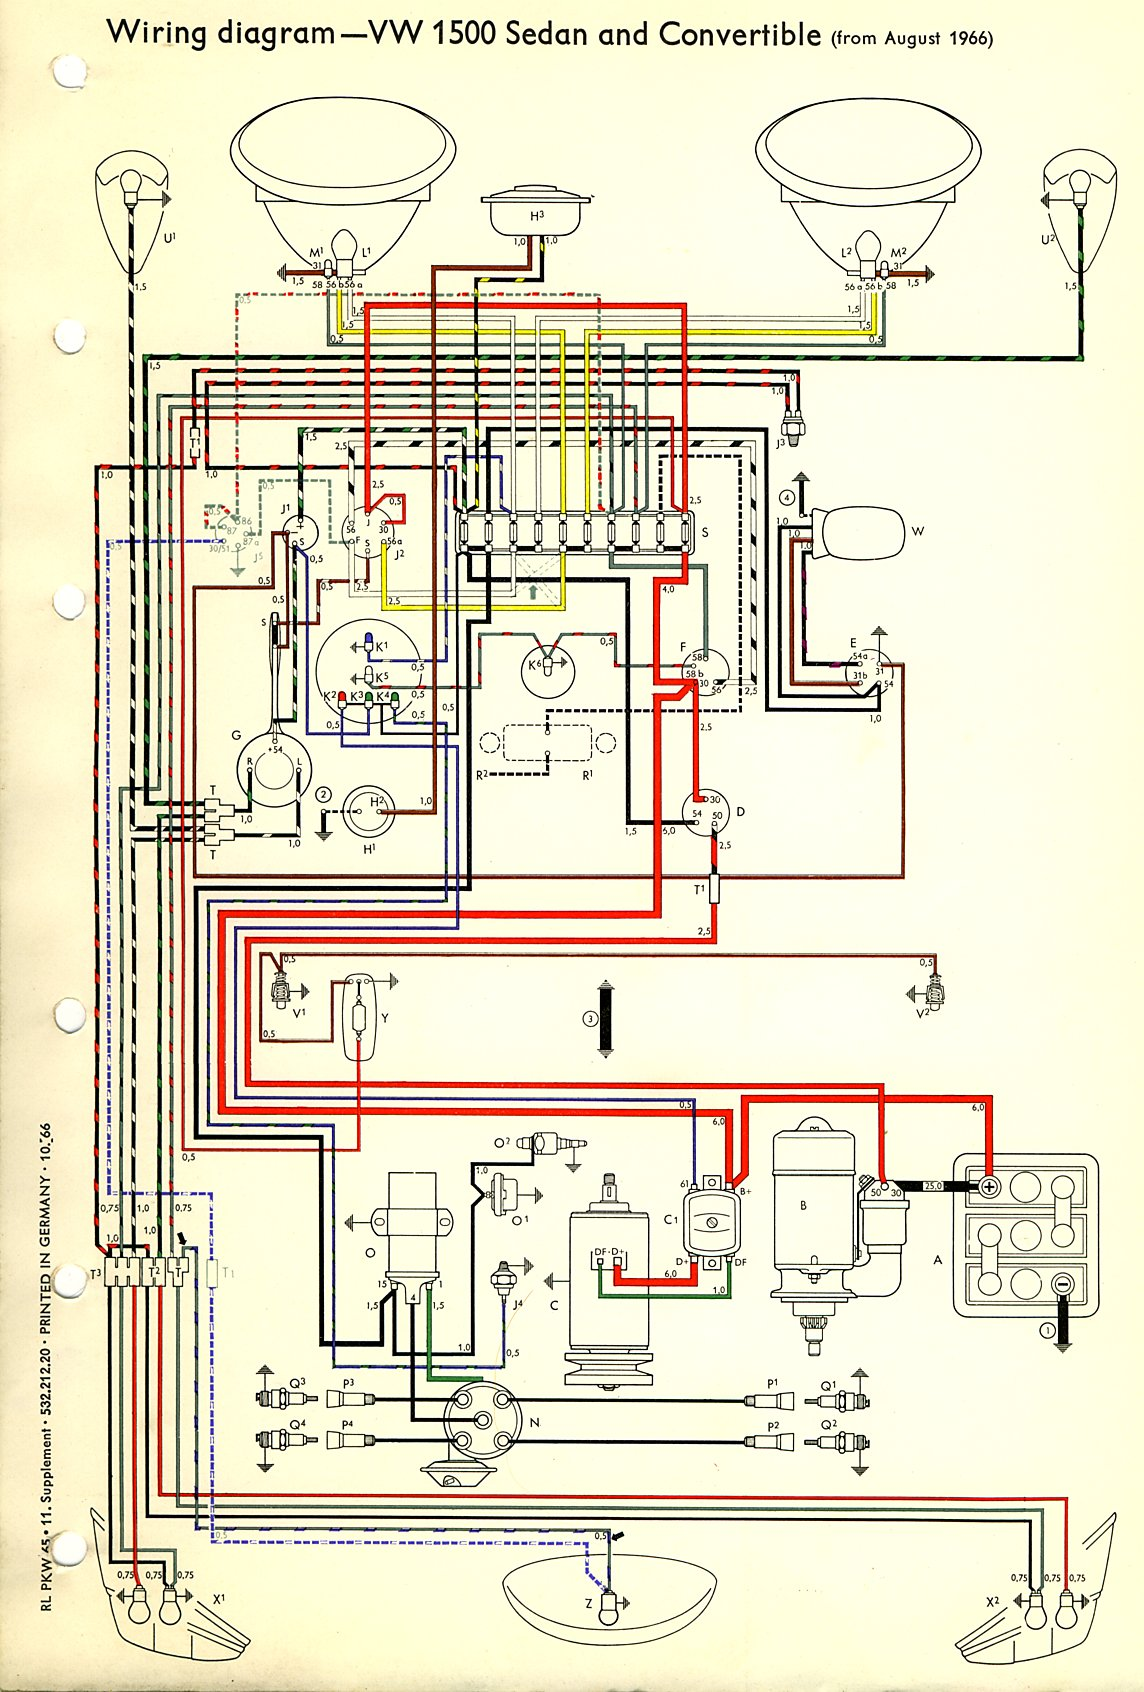 bug_67 1967 beetle wiring diagram thegoldenbug com VW Beetle Fuse Box Diagram at crackthecode.co